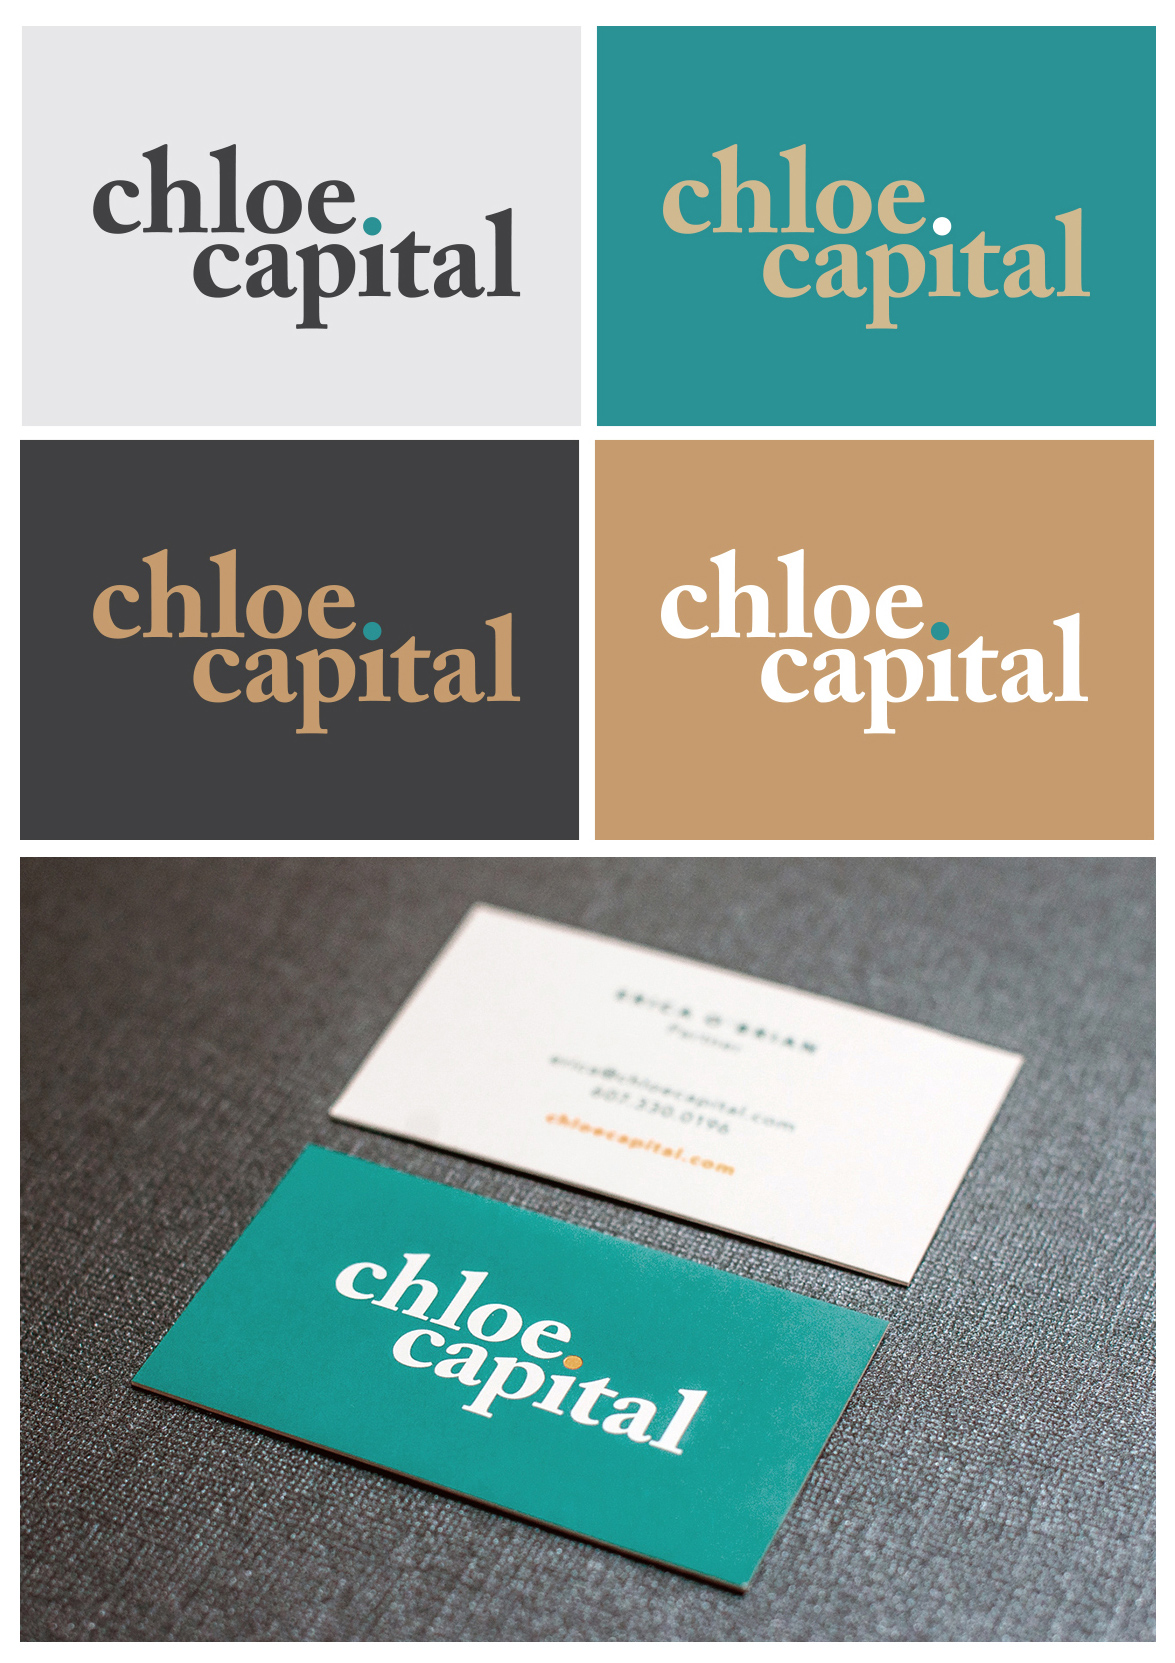 Chloe Capital logo featured on the following colored backgrounds, light gray, teal, dark gray, and gold. Also a glamour shot of the new Chloe business cards laying on a piece of dark gray background.